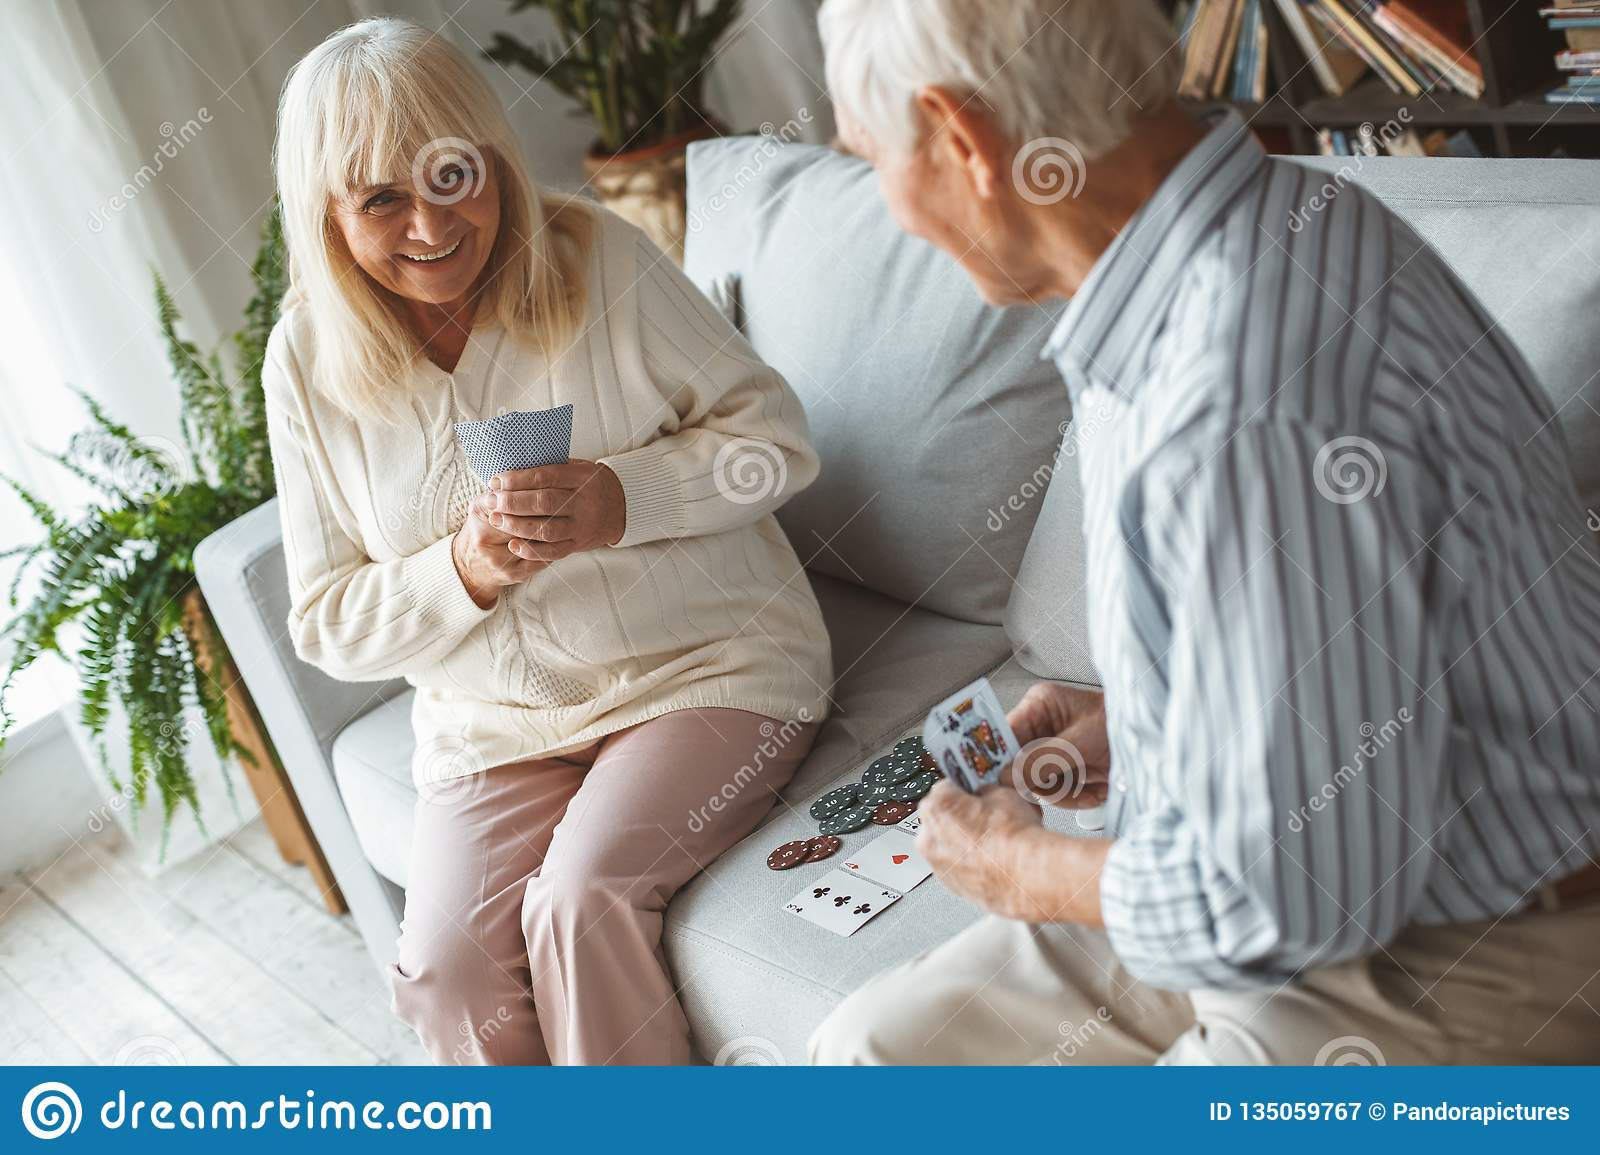 Senior couple together at home retirement concept playing poker sly grin